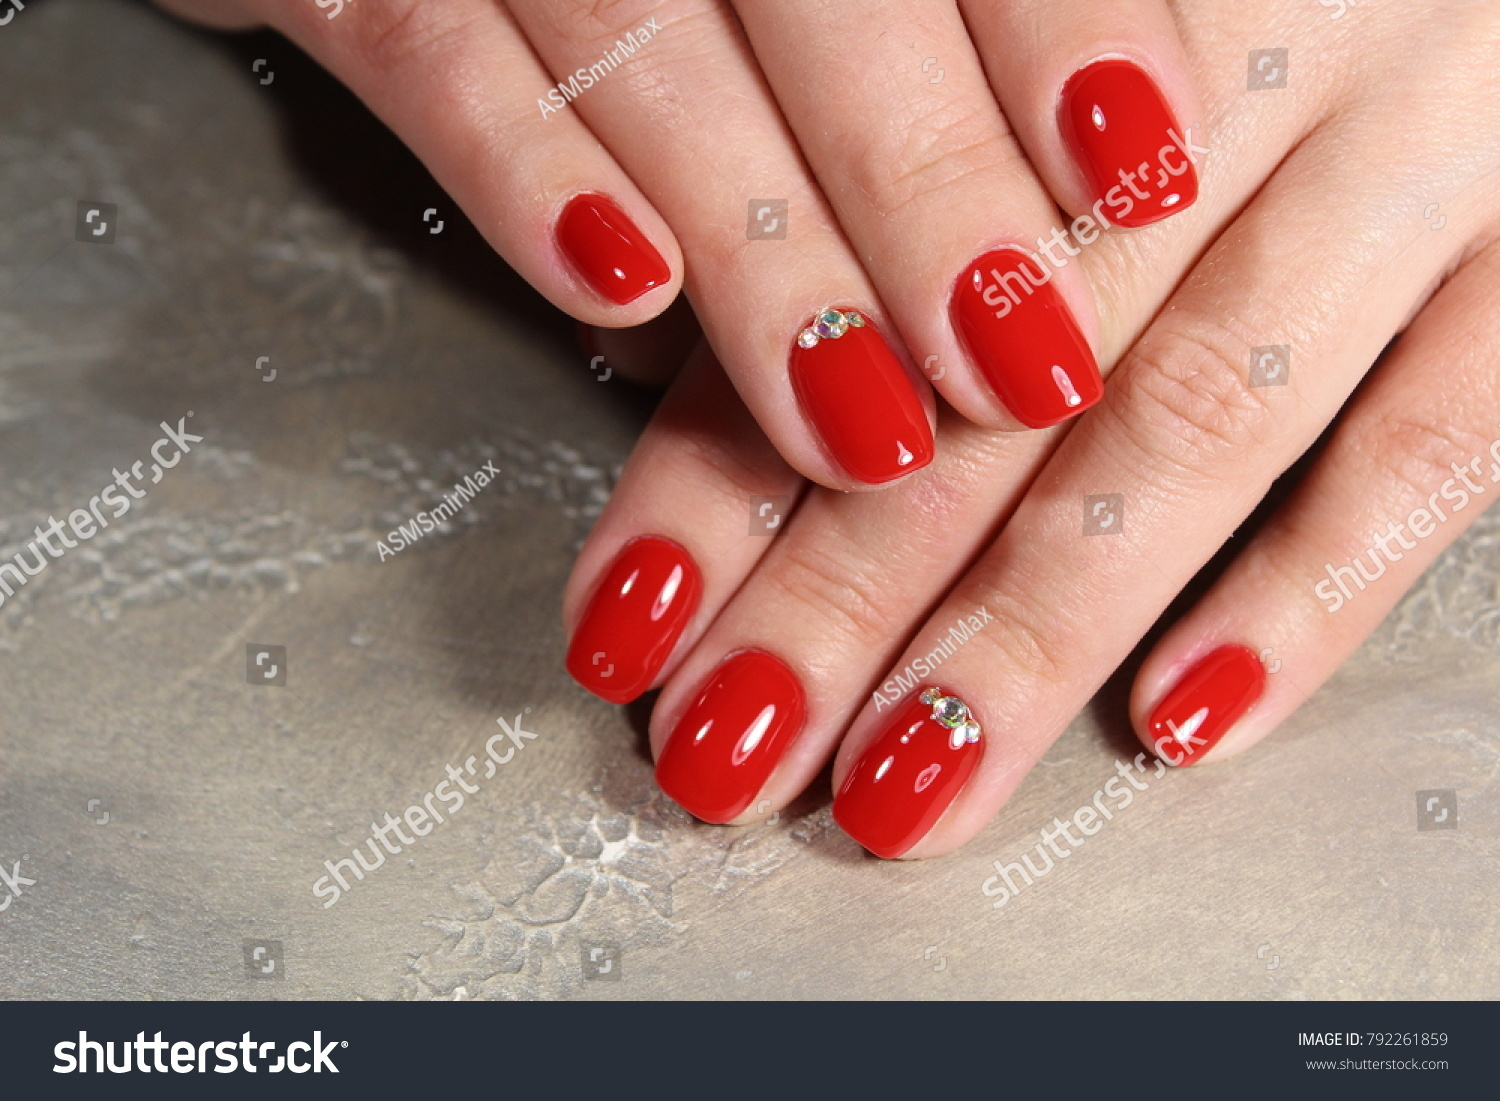 Hands Beautiful Manicure Natural Nails Gel Stock Photo (Edit Now ...